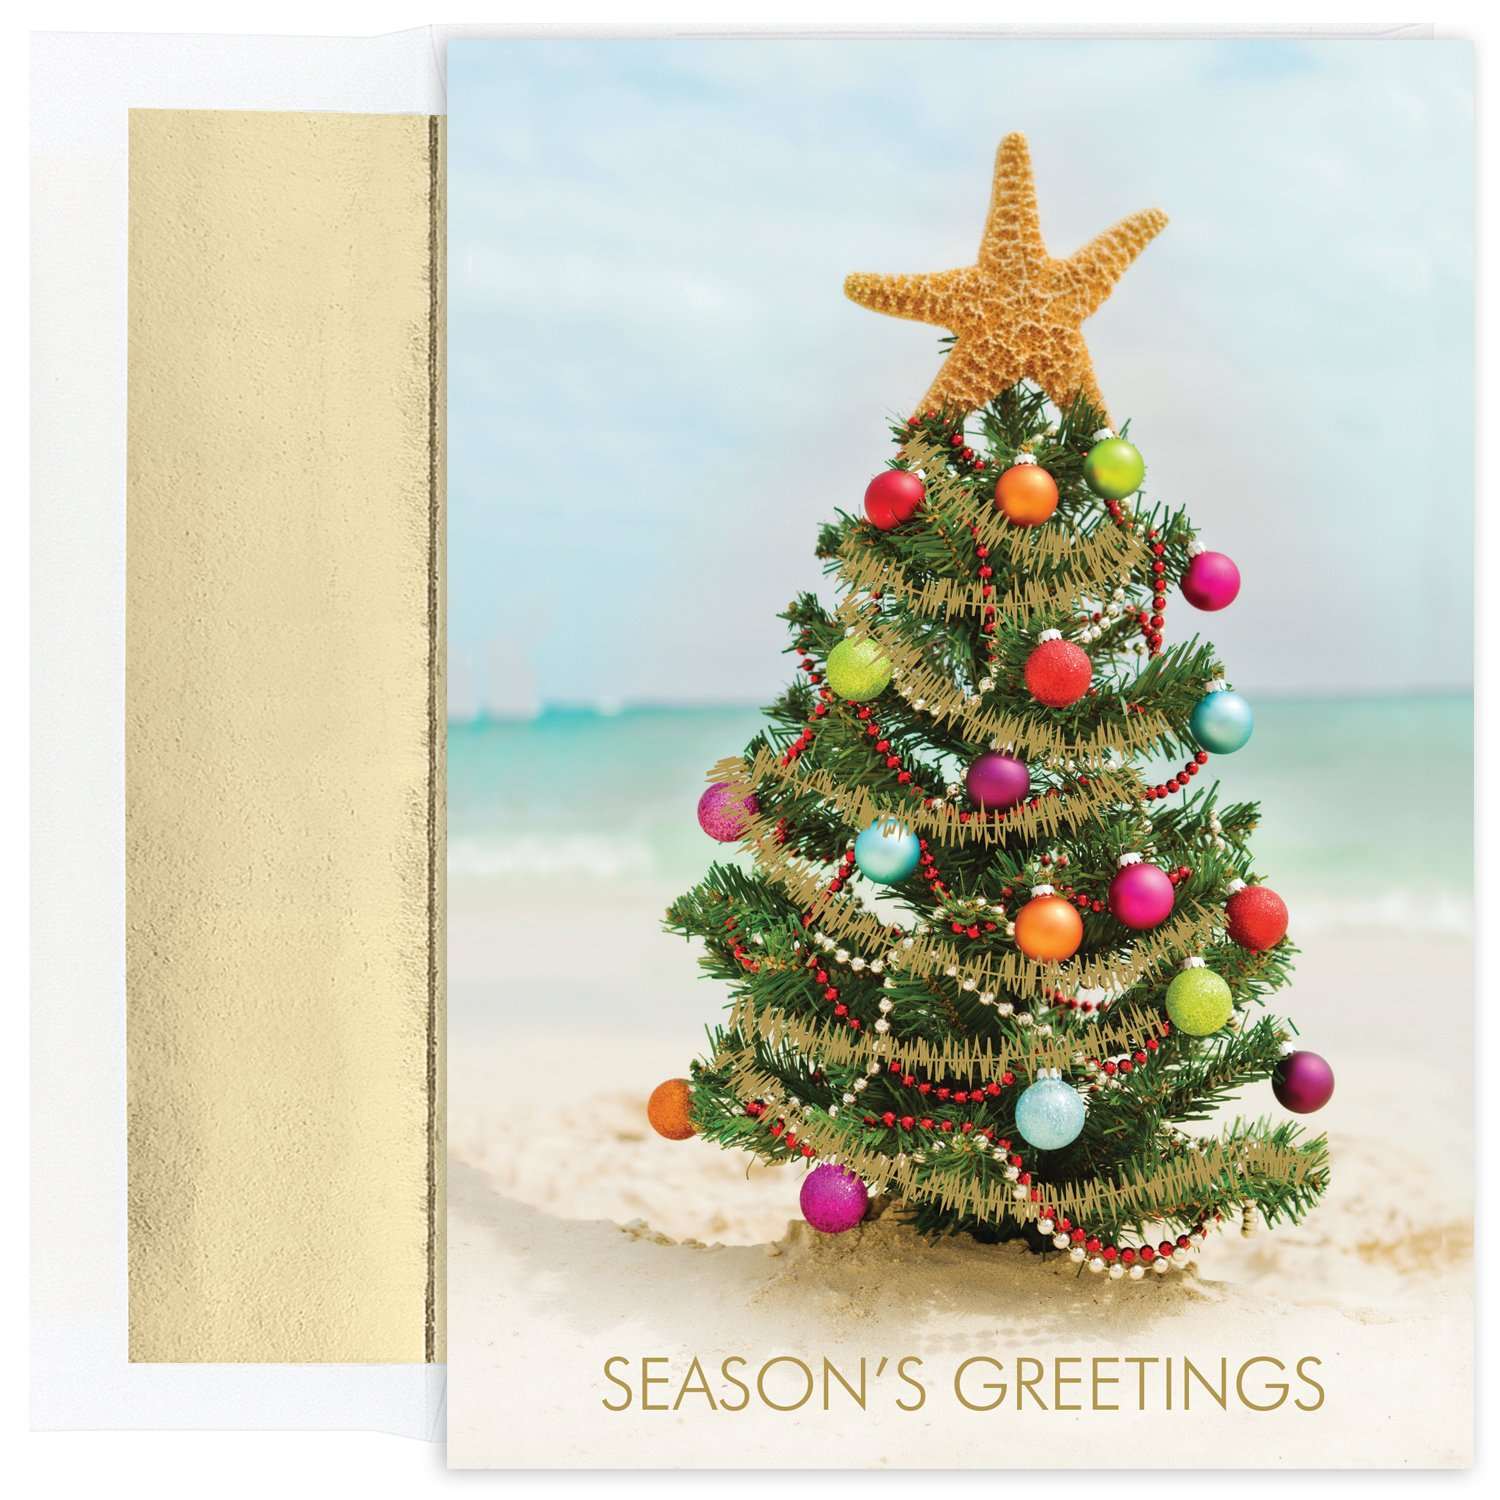 Amazon Com Masterpiece Studios Warmest Wishes 18 Count Christmas Cards Beach Christmas Tree 5 62 X 7 87 901400 Office Products